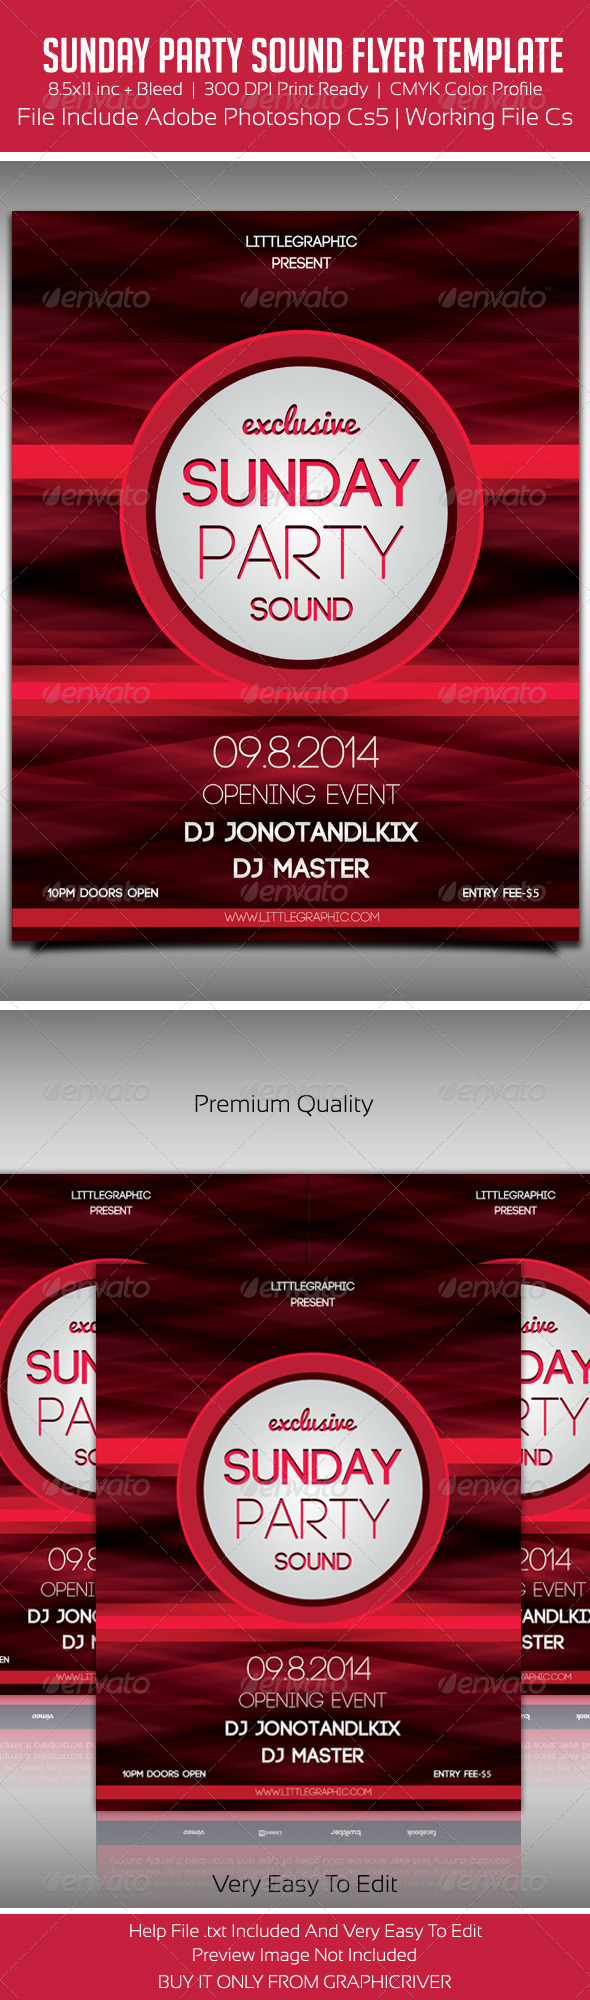 GraphicRiver Sunday Party Sound Flyer 5635005